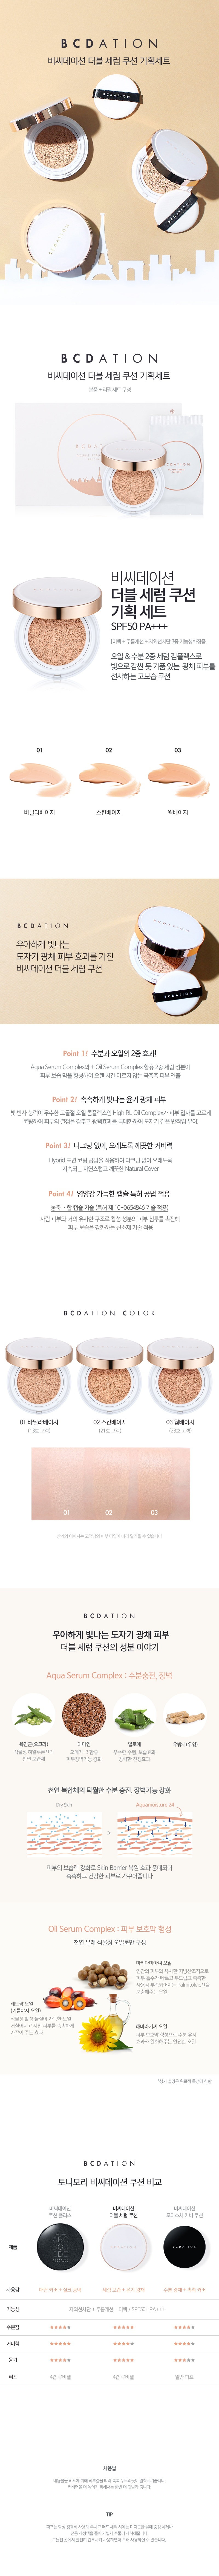 Tony Moly BCDation Double Serum Cushion Set refill korean cosmetic makeup product online shop malaysia spain portugal1